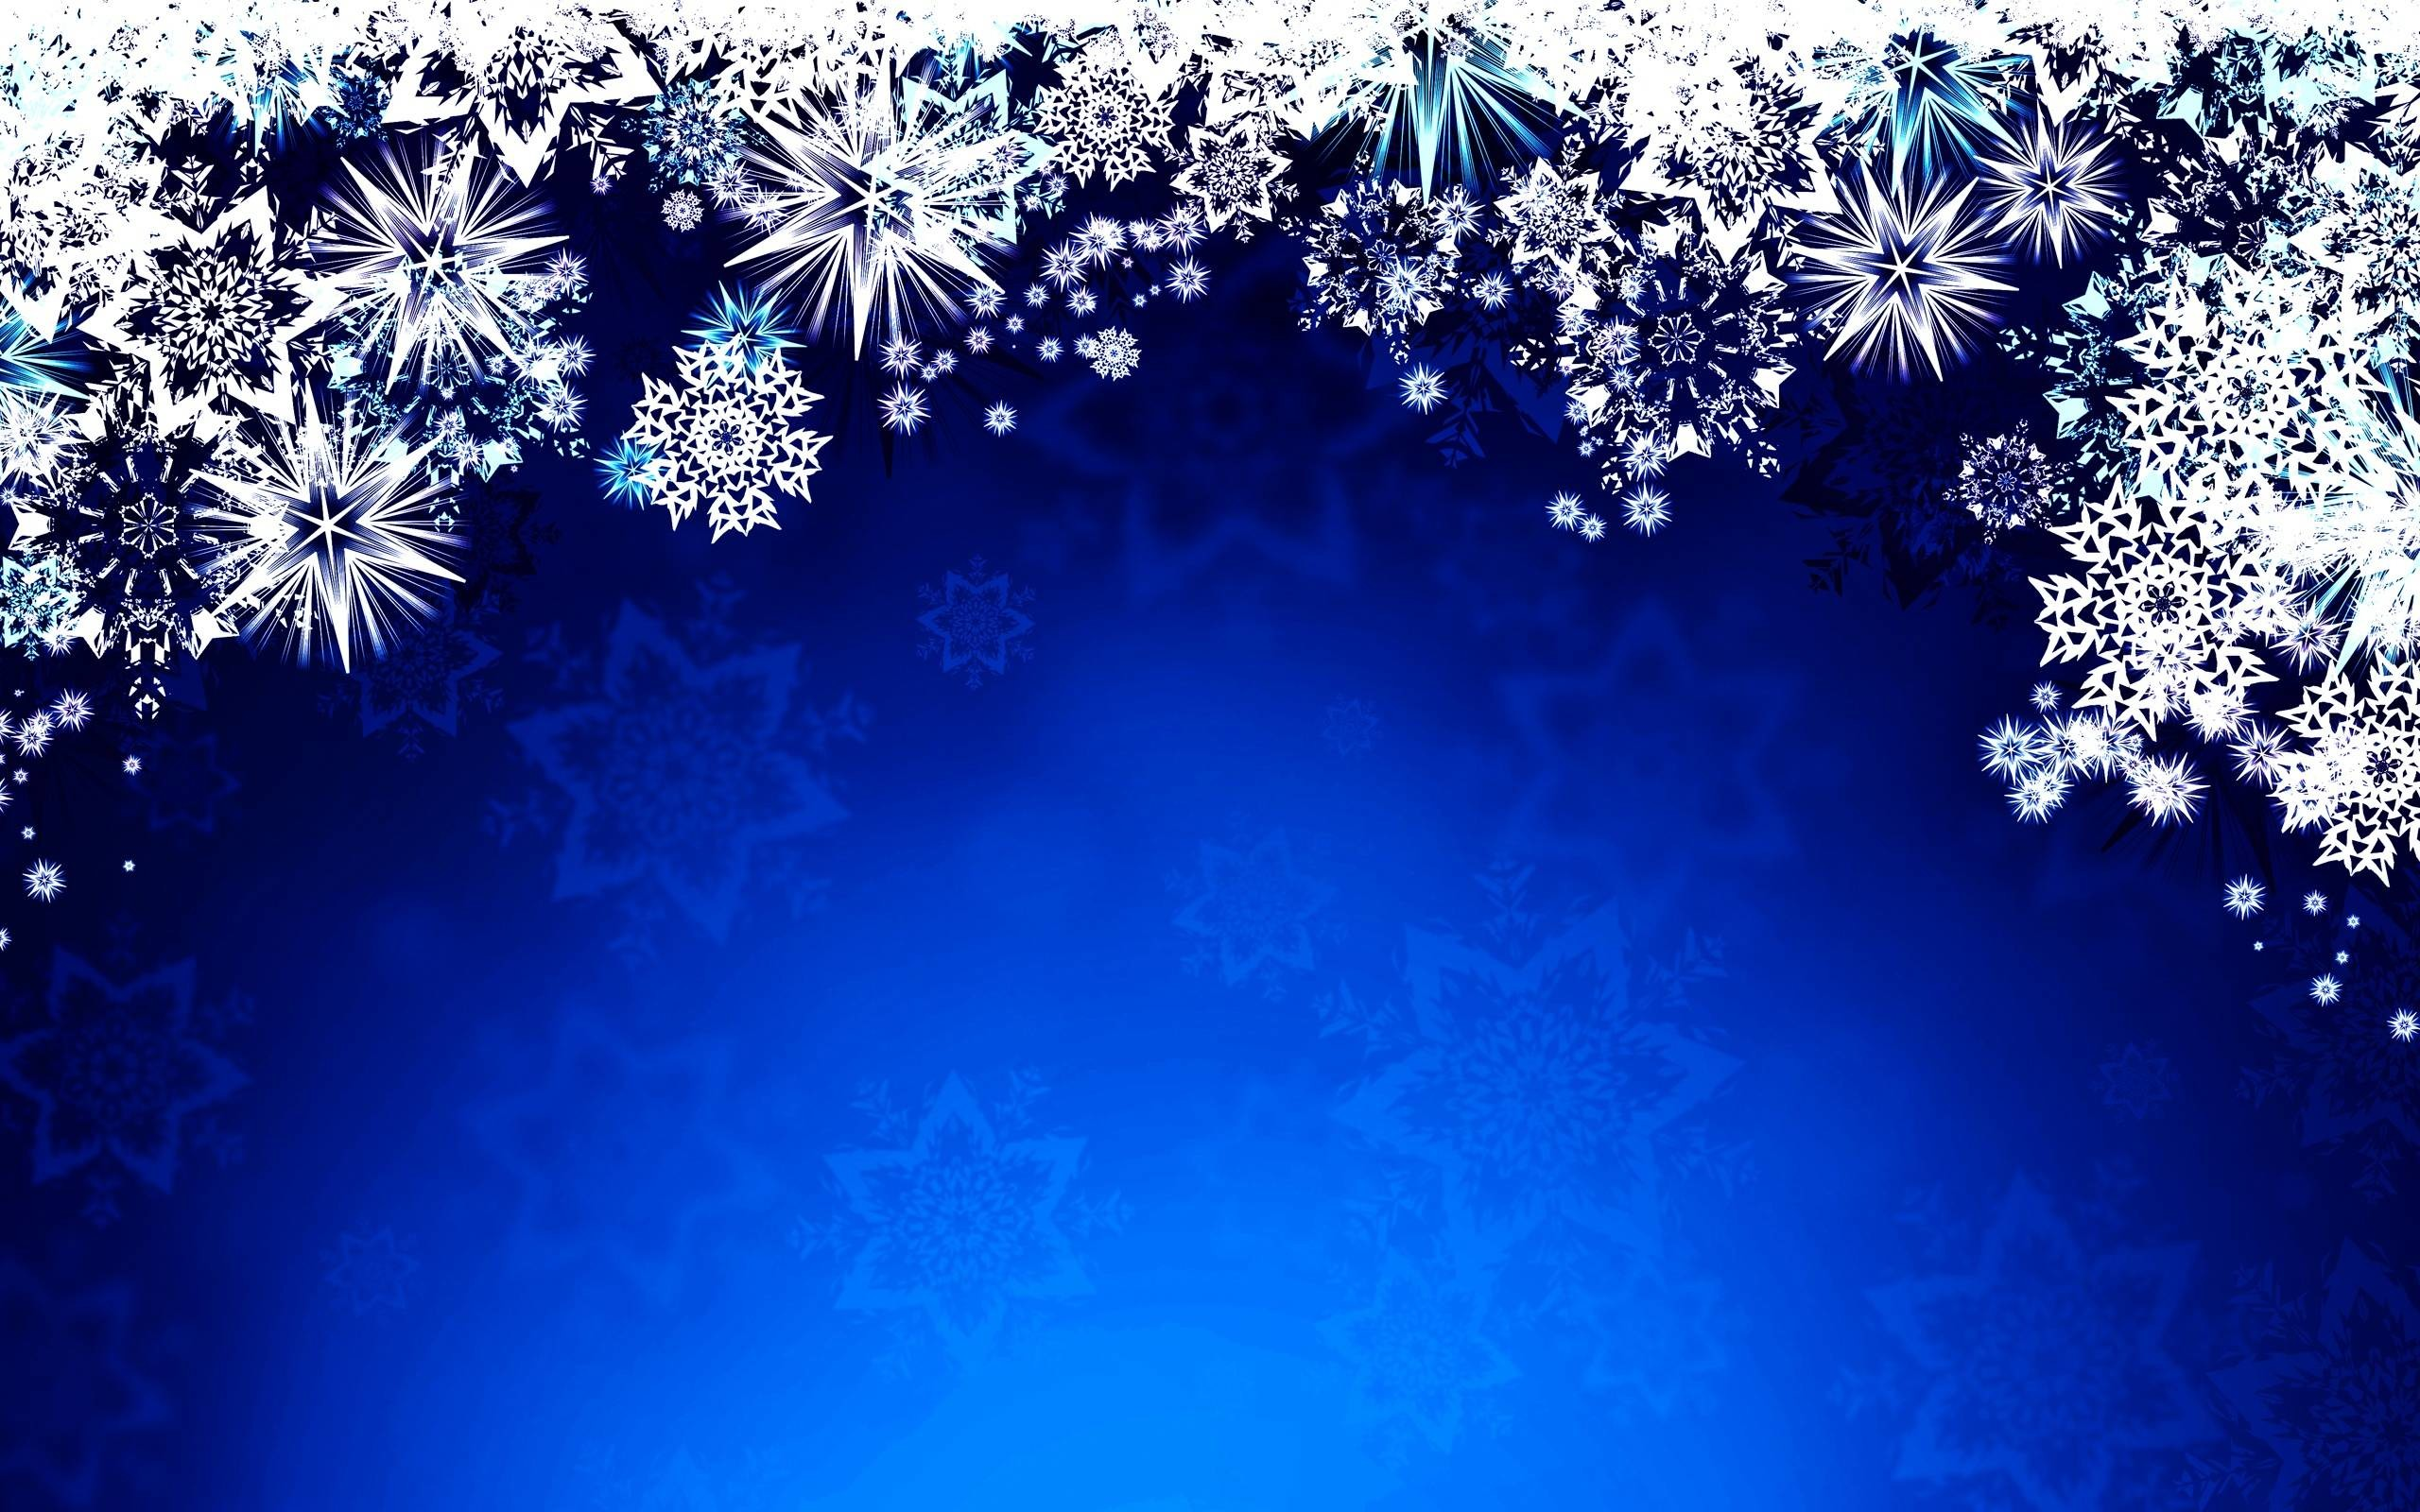 Snowflake desktop background 68 images 2560x1600 snowflakes wallpapers full hd wallpaper search voltagebd Gallery